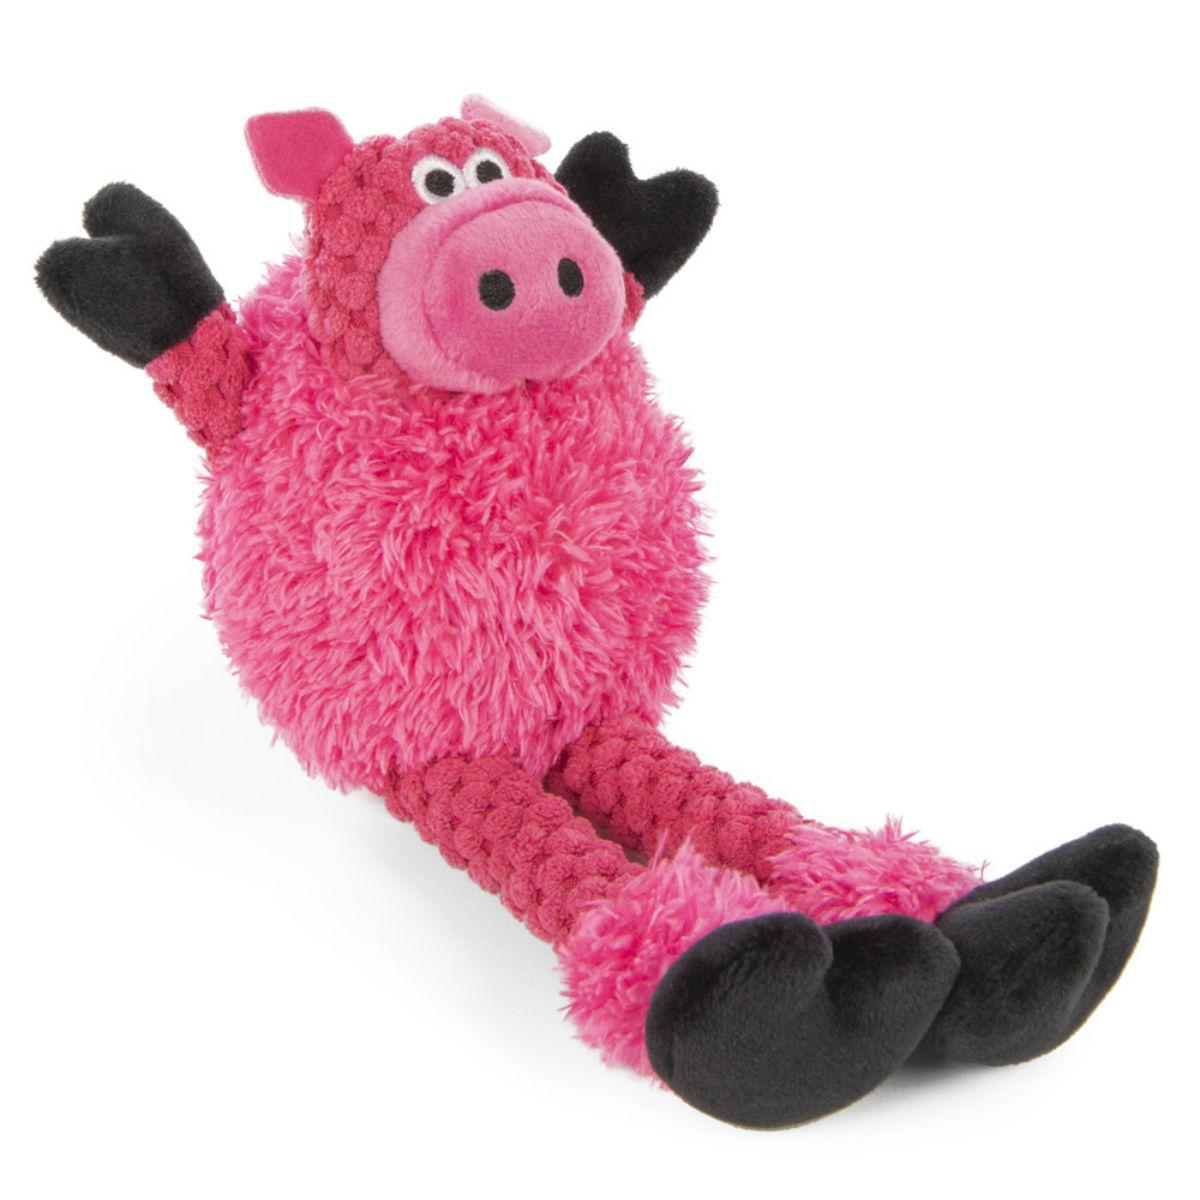 goDog Just for Me Checkers Skinny Dog Toy - Pig